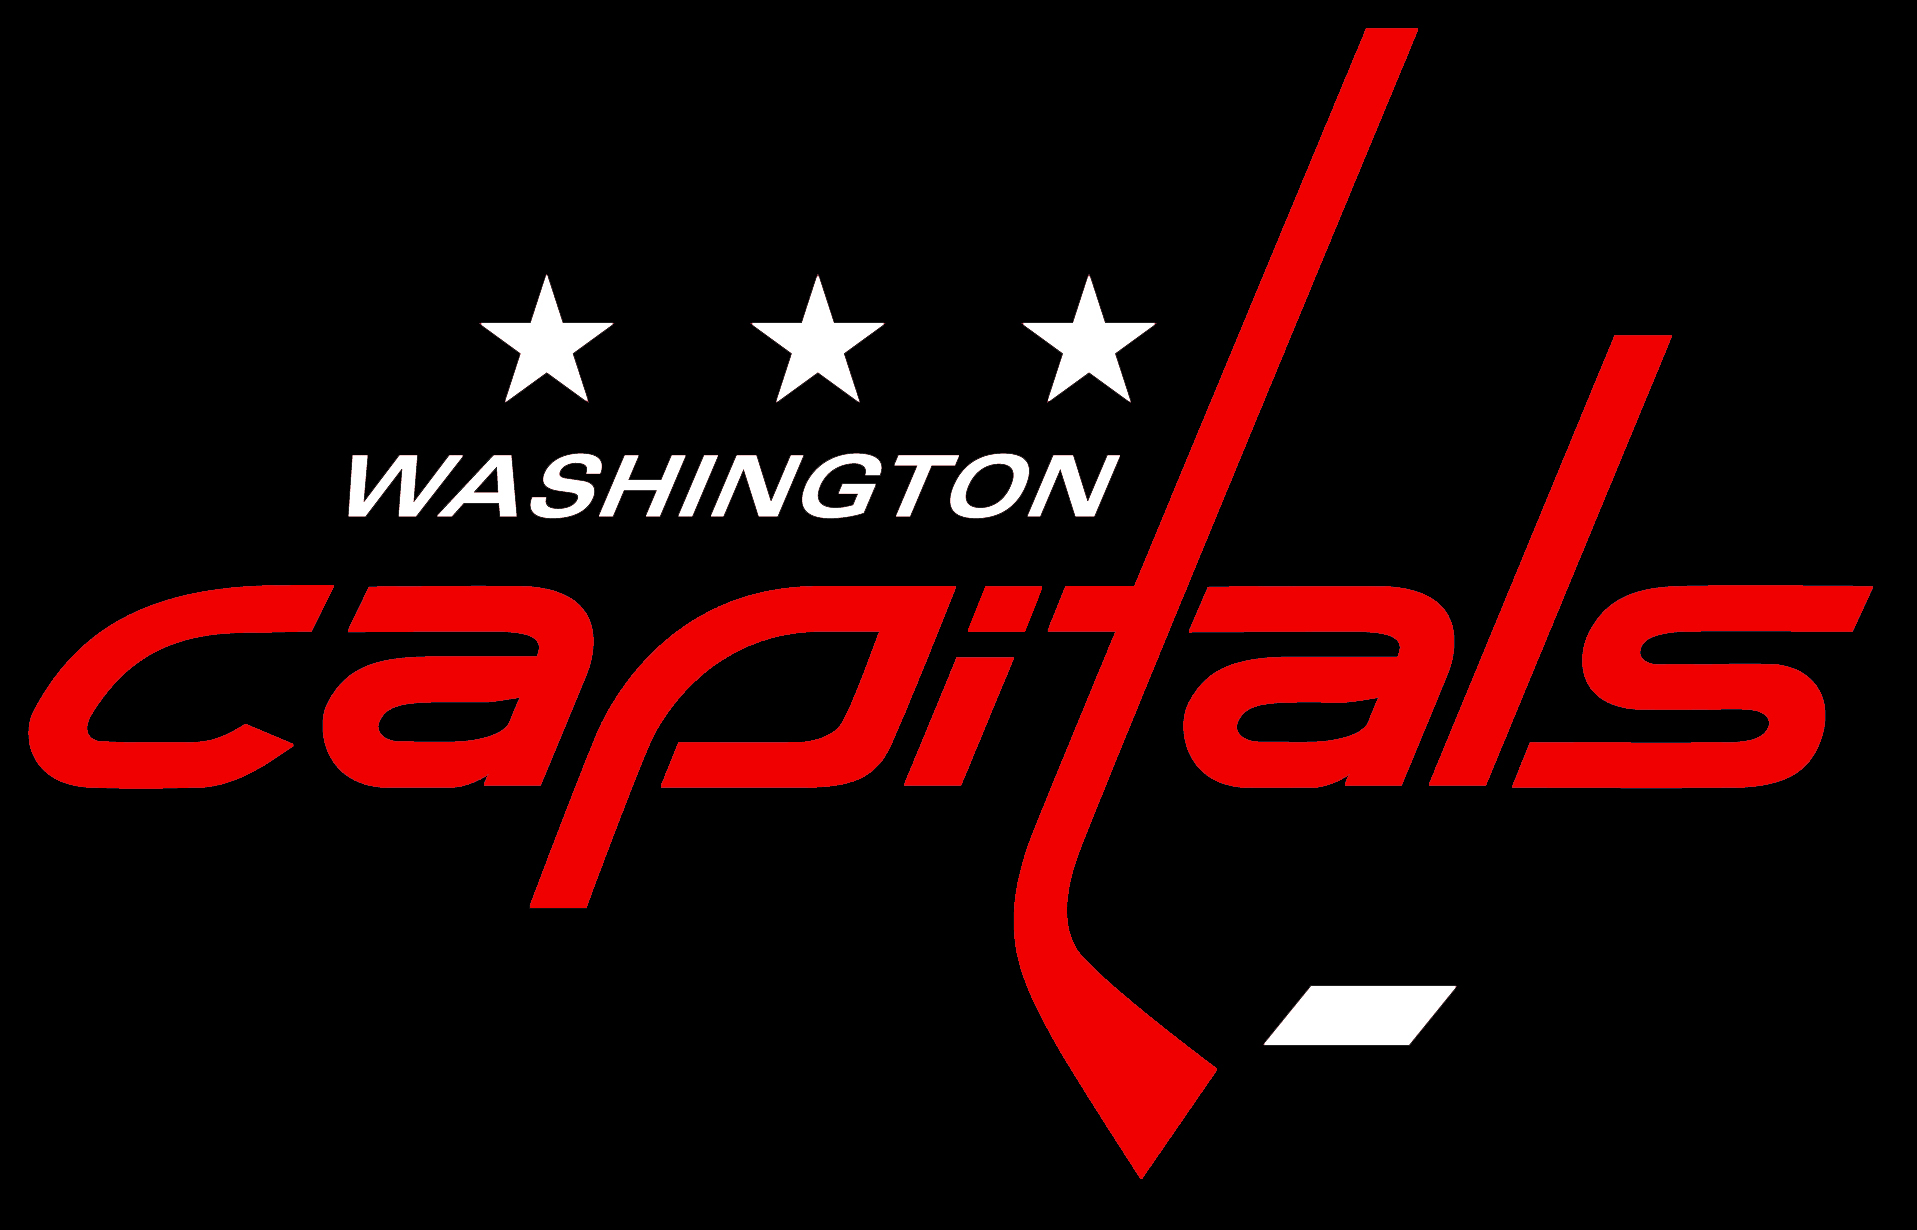 Text Hockey Wallpaper 1917x1230 Text Hockey Washington Capitals 1917x1230